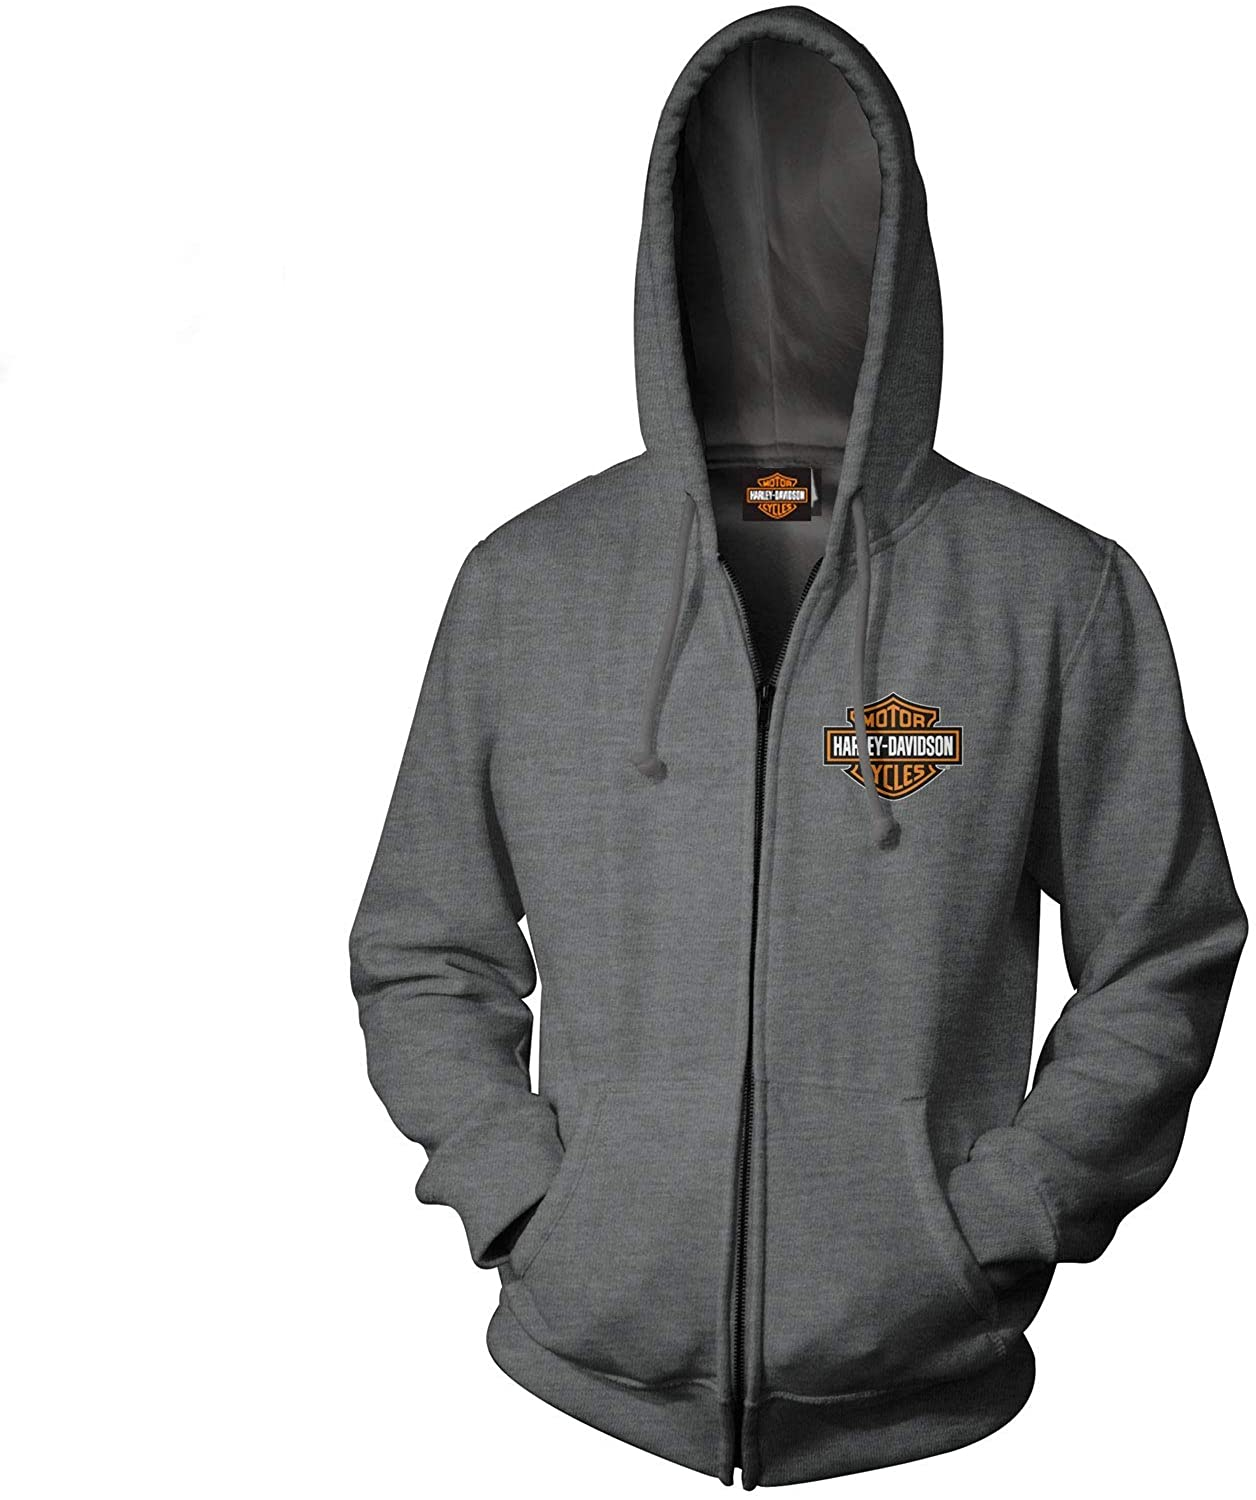 HARLEY-DAVIDSON Military - Men's Custom Zip Hoodie with Military Bases Back Graphics - Overseas Tour   Military Skull Text